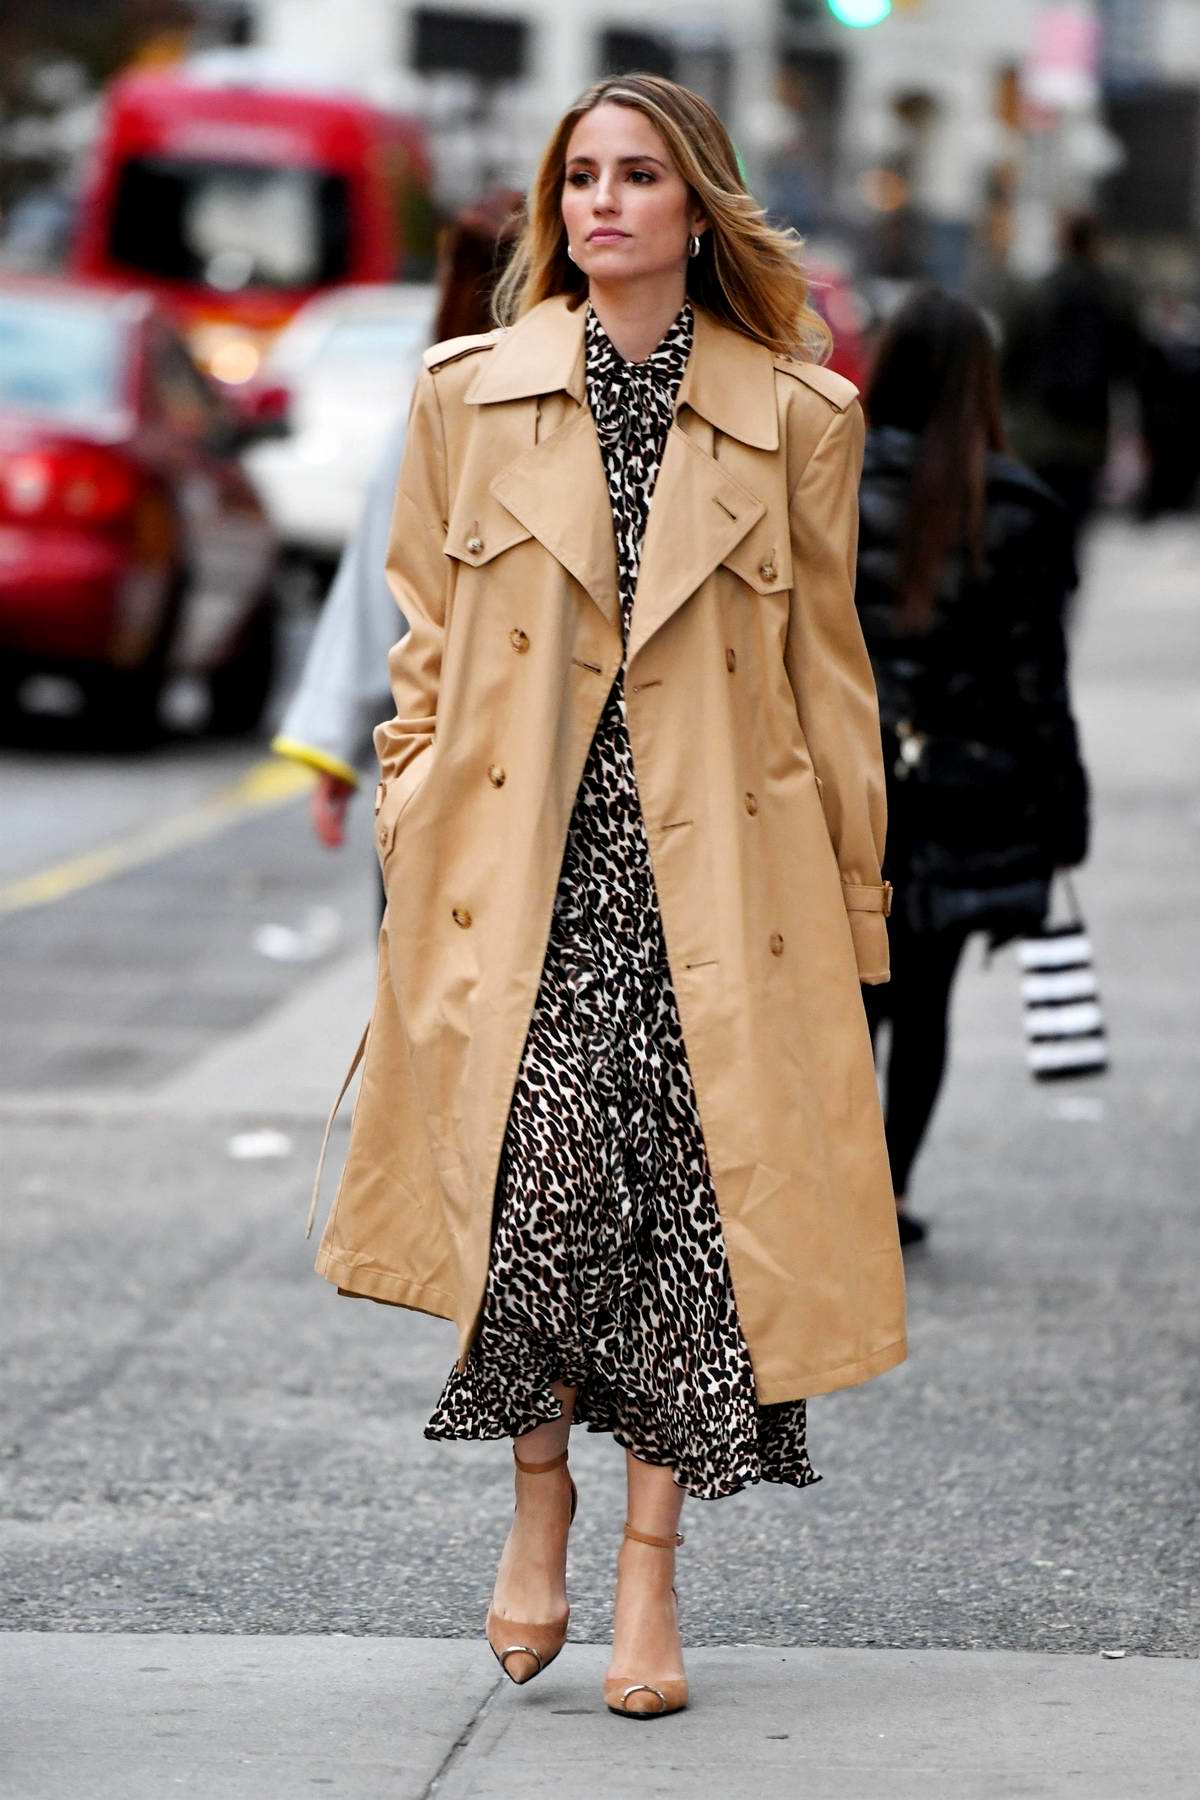 Dianna Agron makes a stylish appearance donning an animal print dress paired with a trench coat in New York City